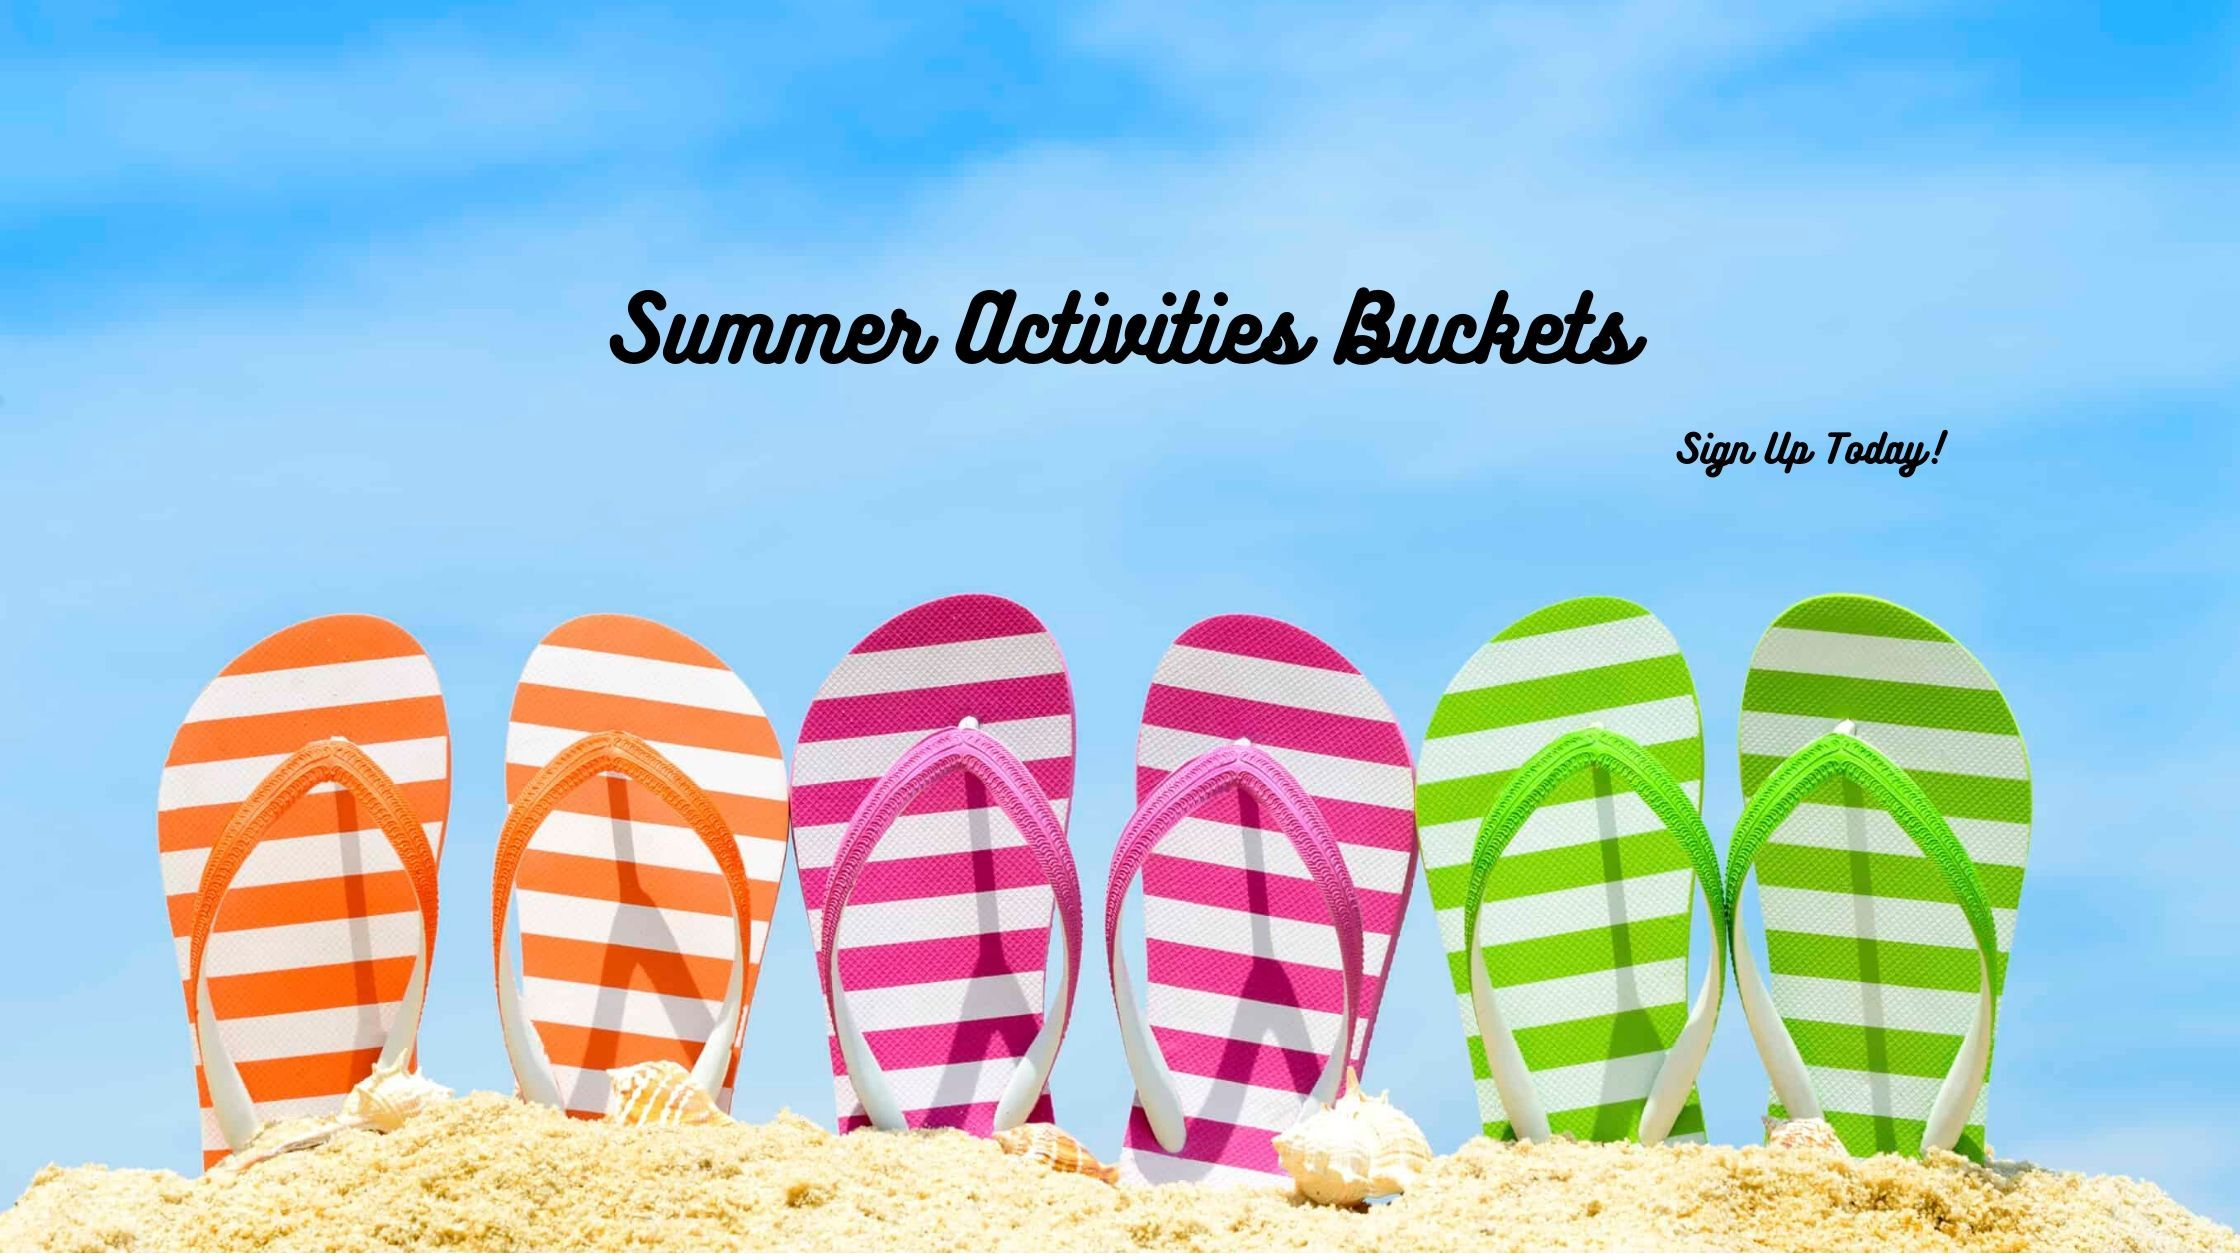 Summer Activities Buckets